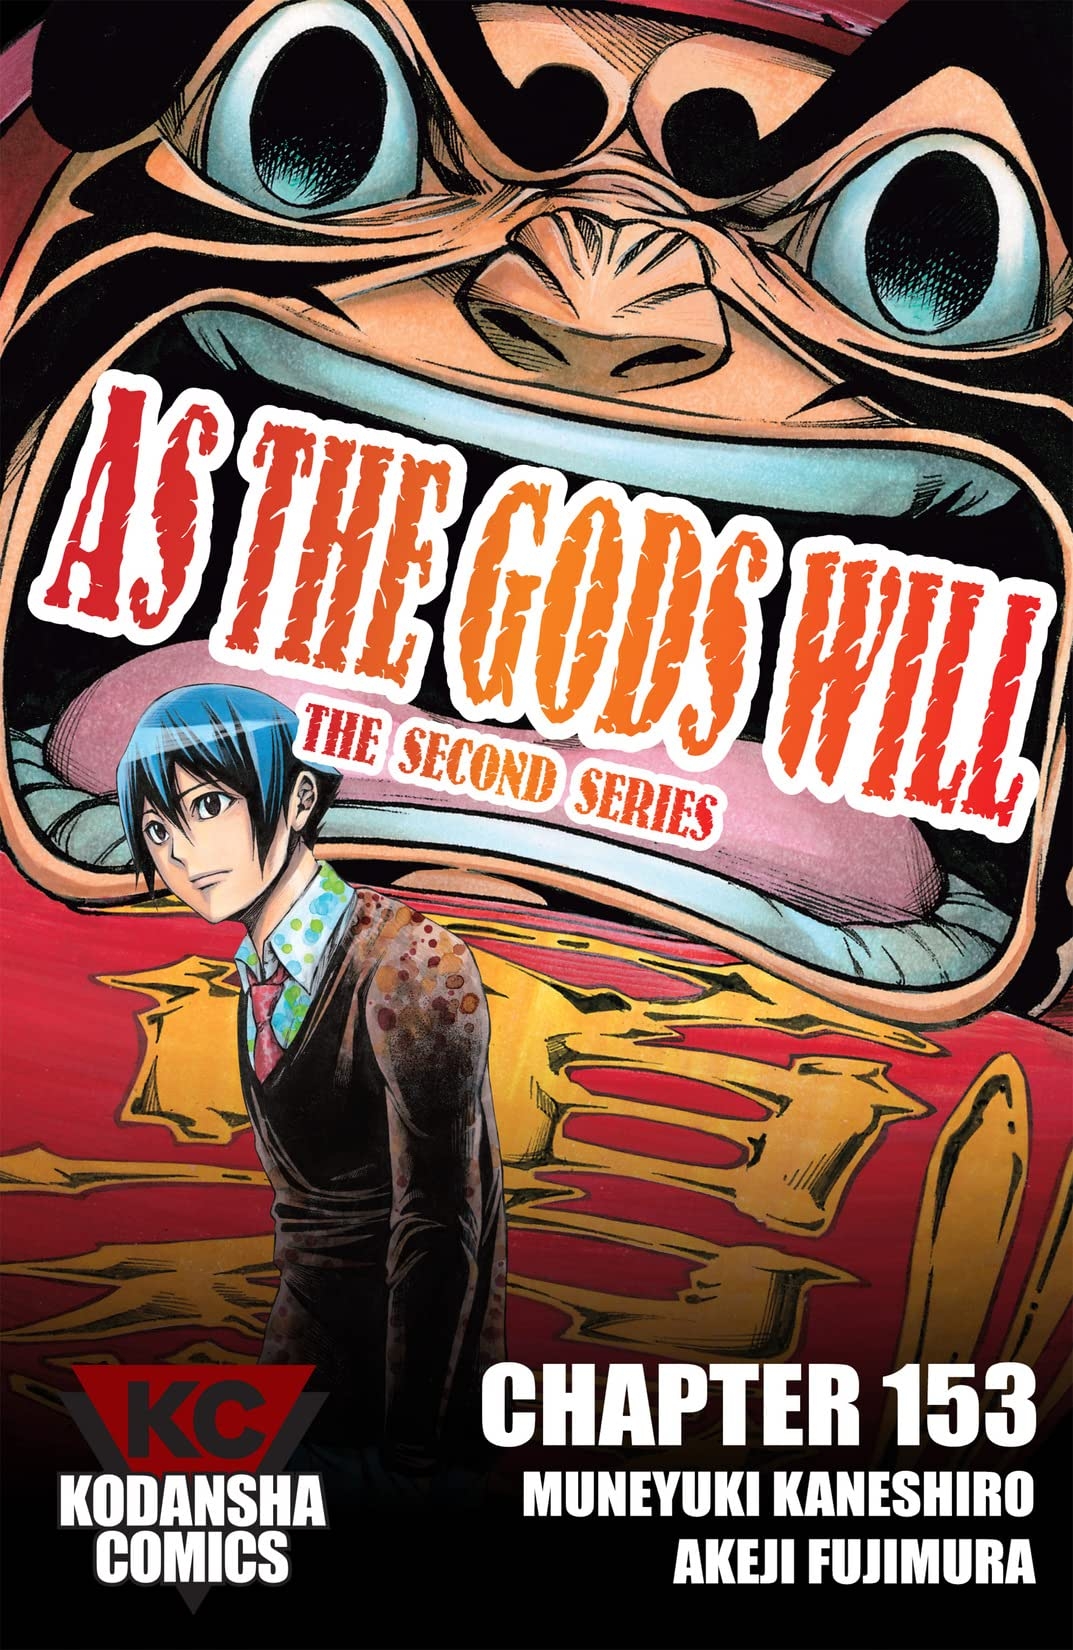 As The Gods Will: The Second Series #153